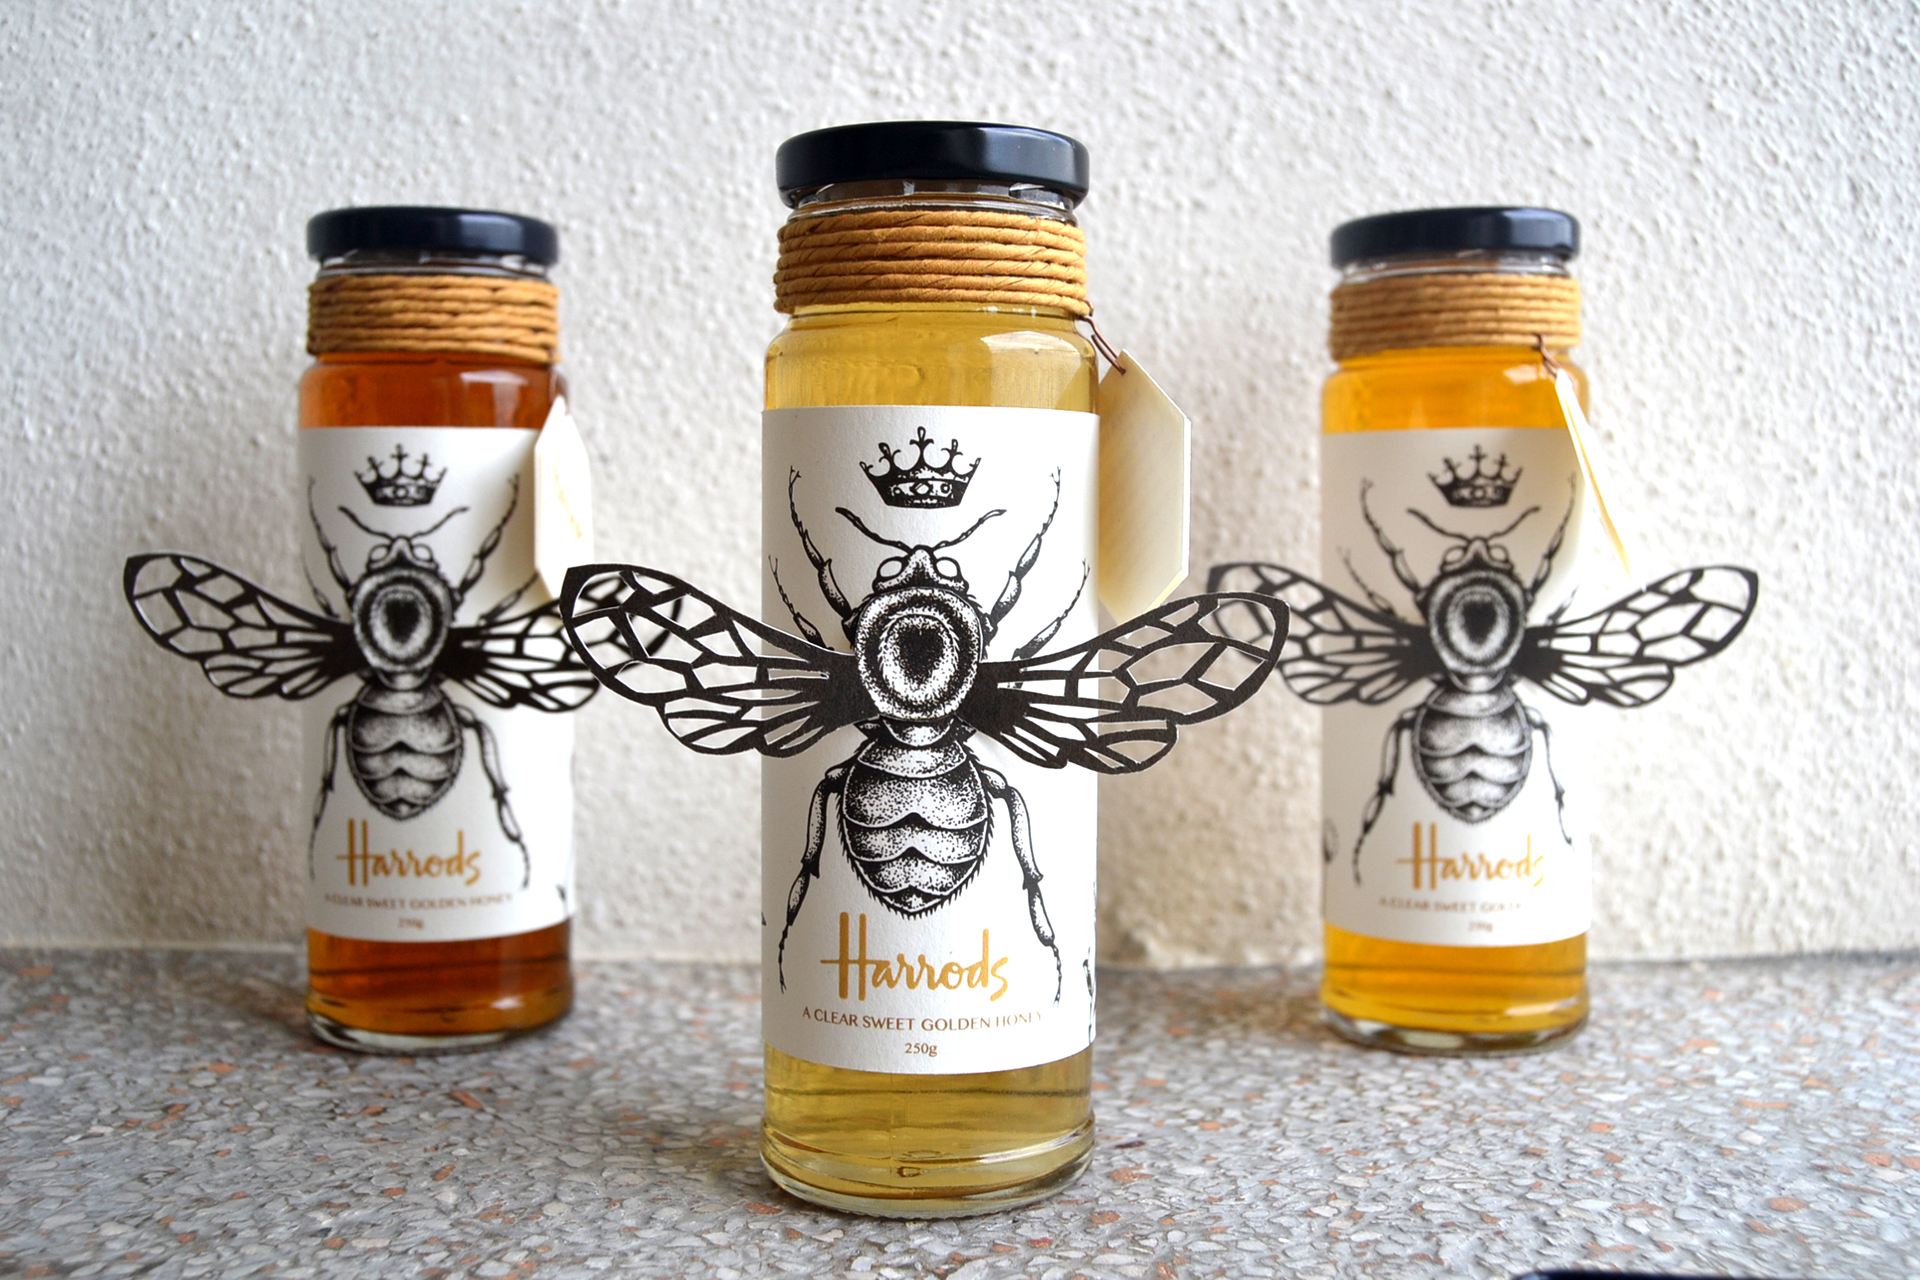 spice up your designs with 40 samples of creative jar labels